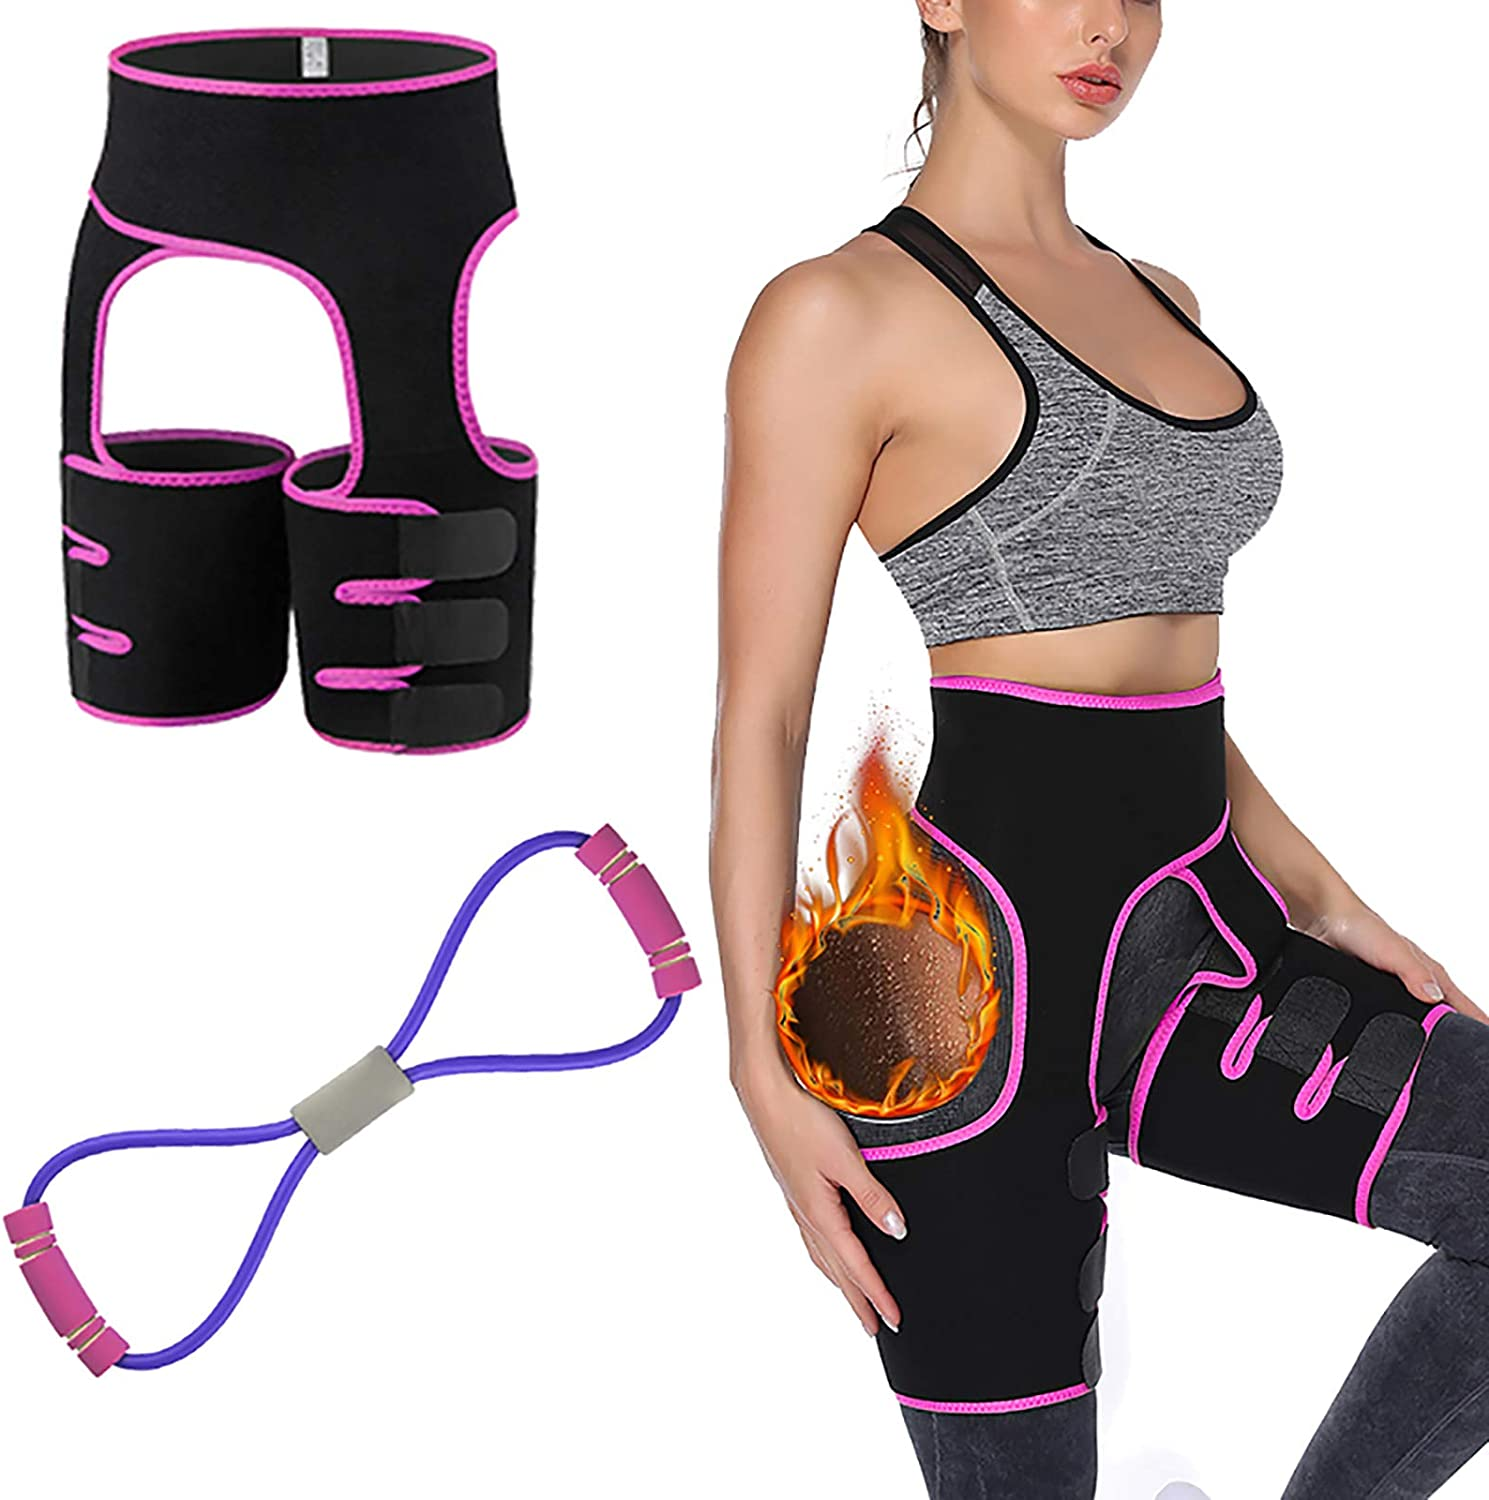 3-in-1 Waist Trainer Belt Thigh Butt Sweat Ranking TOP12 Genuine Free Shipping for W Lifter Trimmer